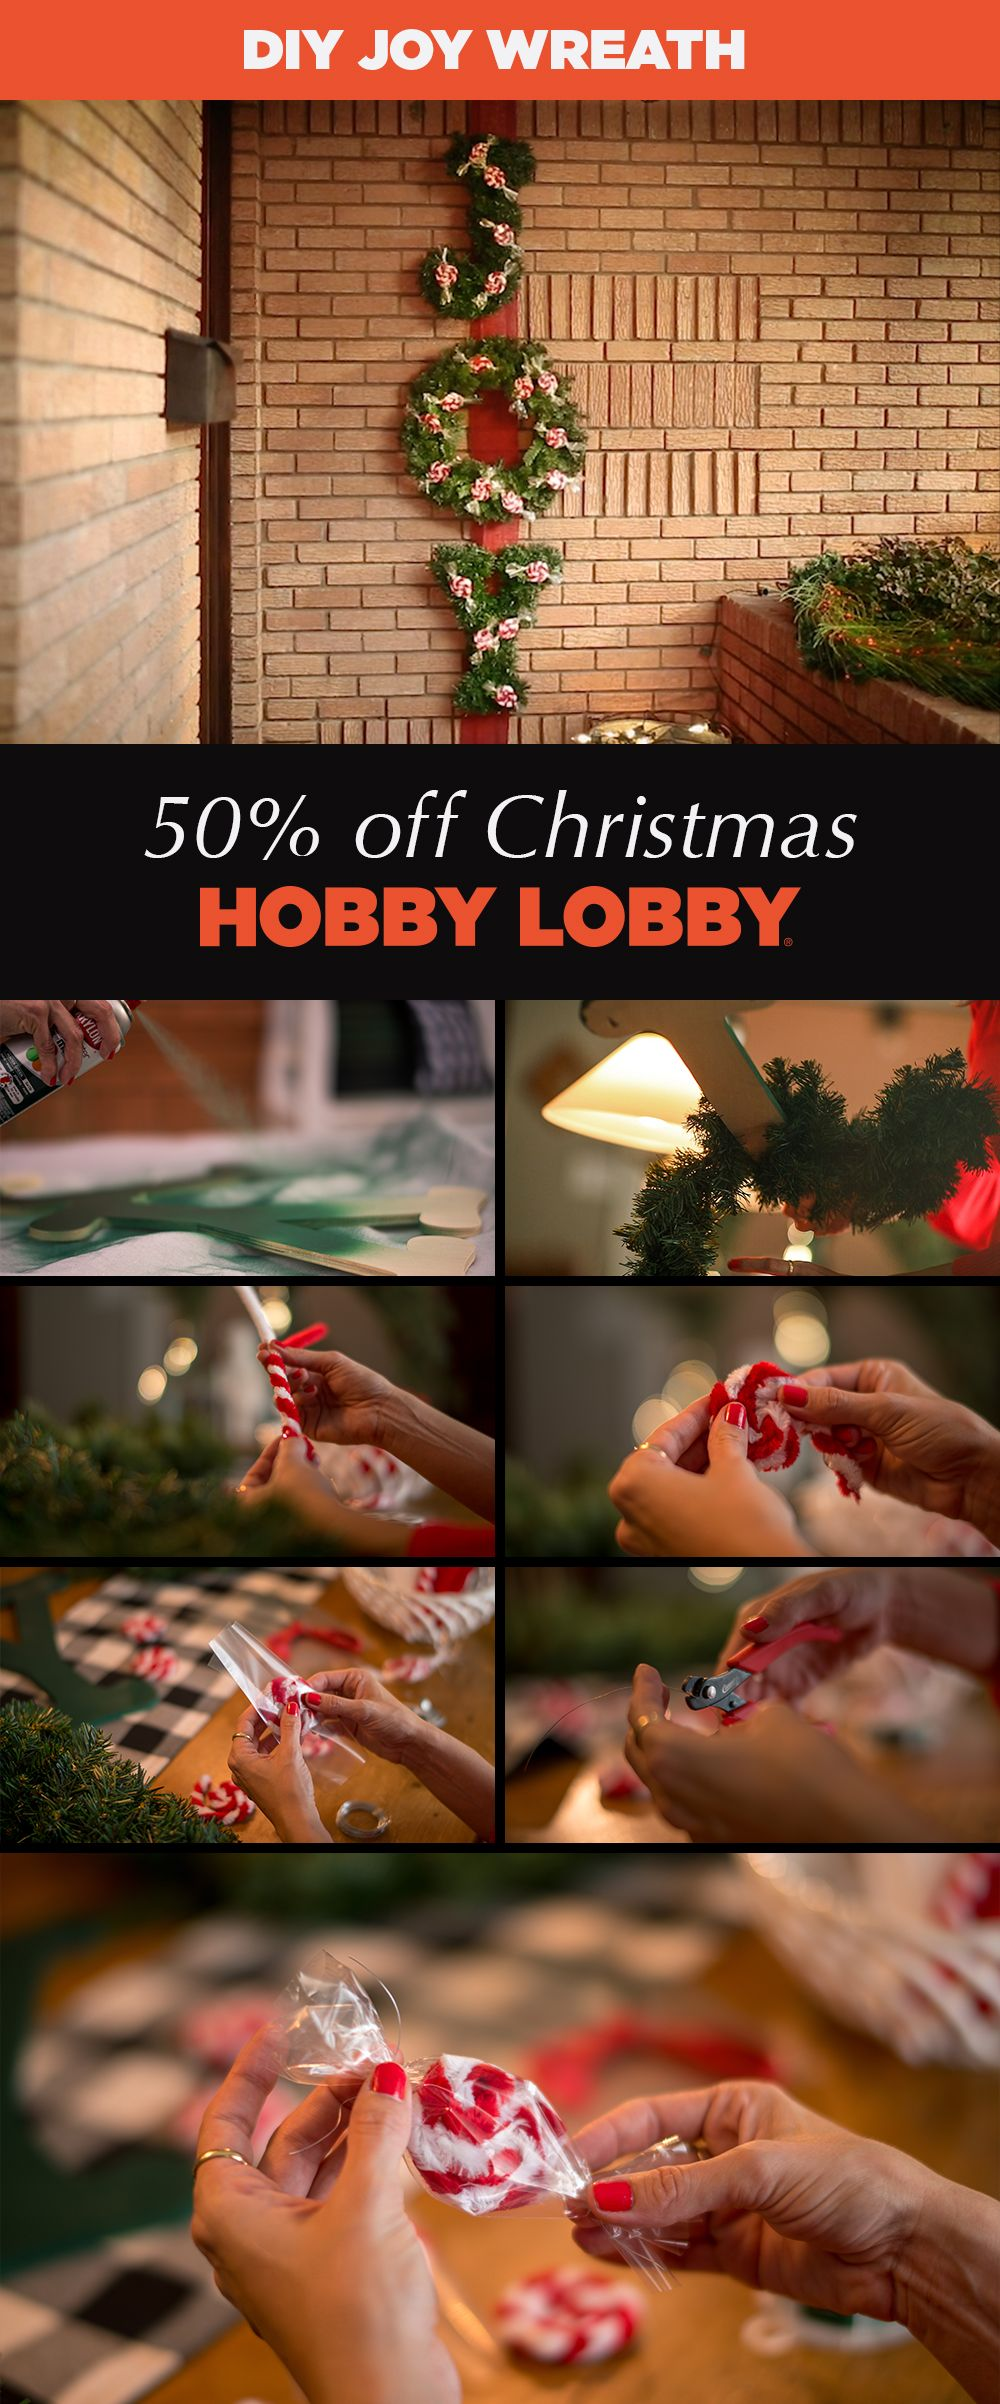 Hobby Lobby Christmas Wreaths.50 Off Christmas At Hobby Lobby Christmas Is